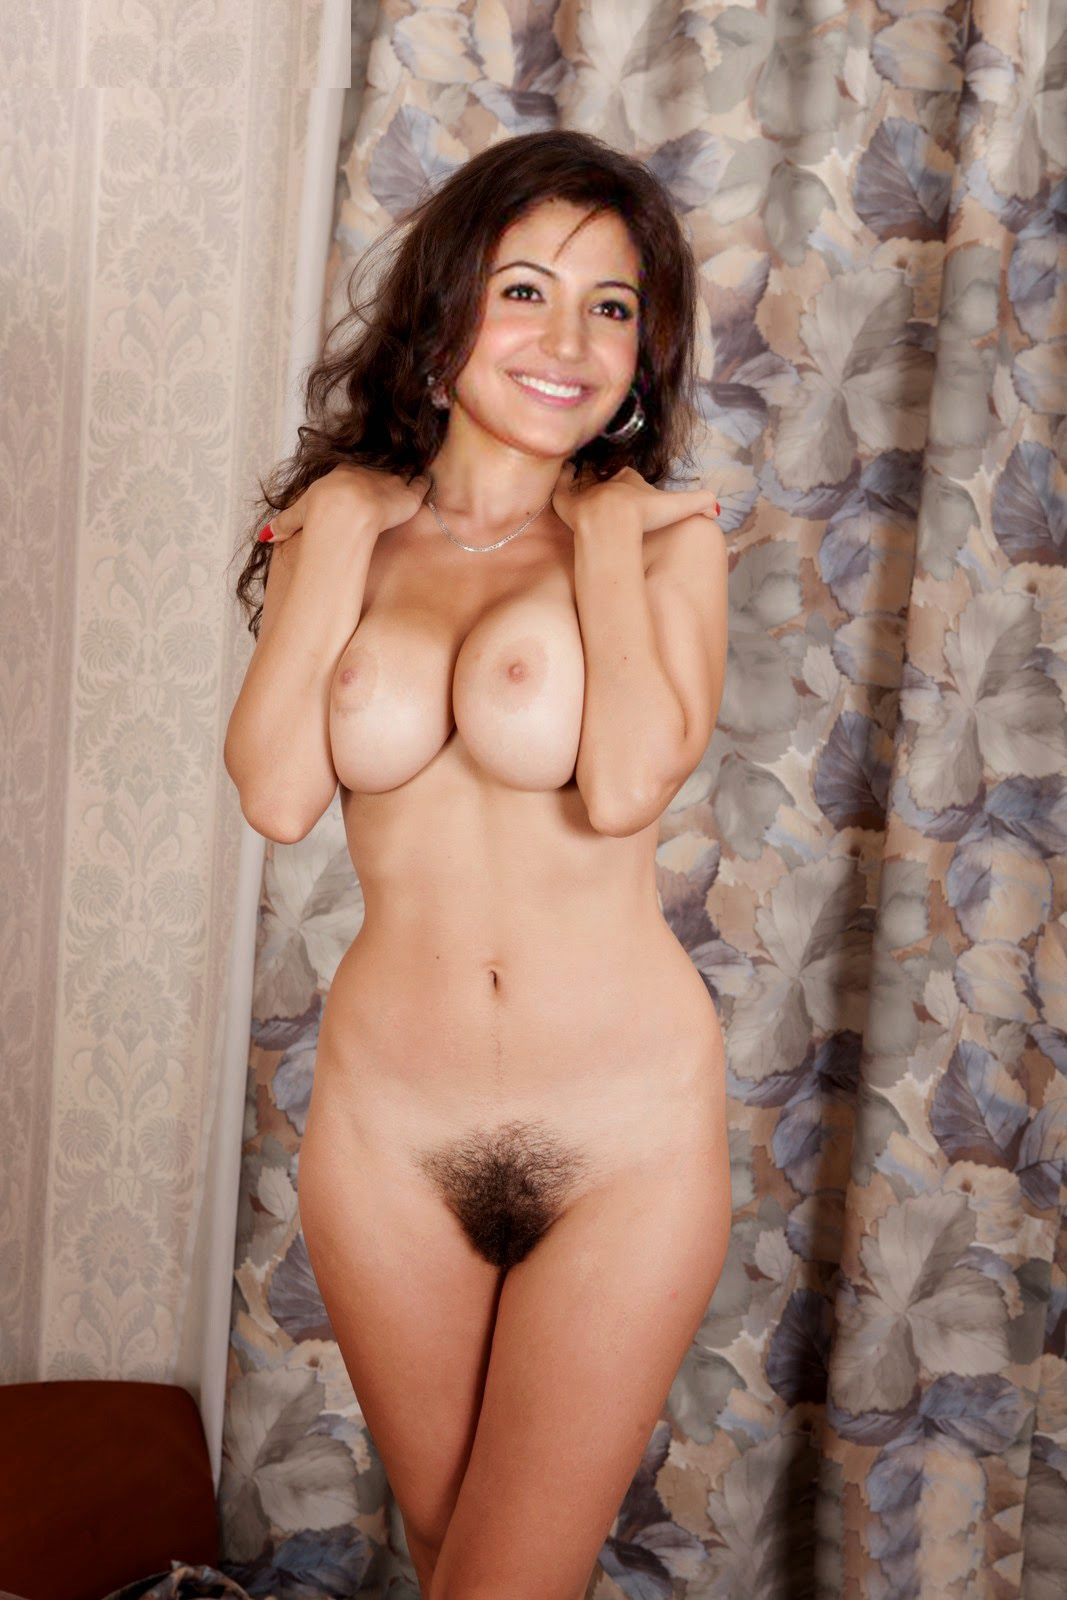 Indonesia small girl nude photo